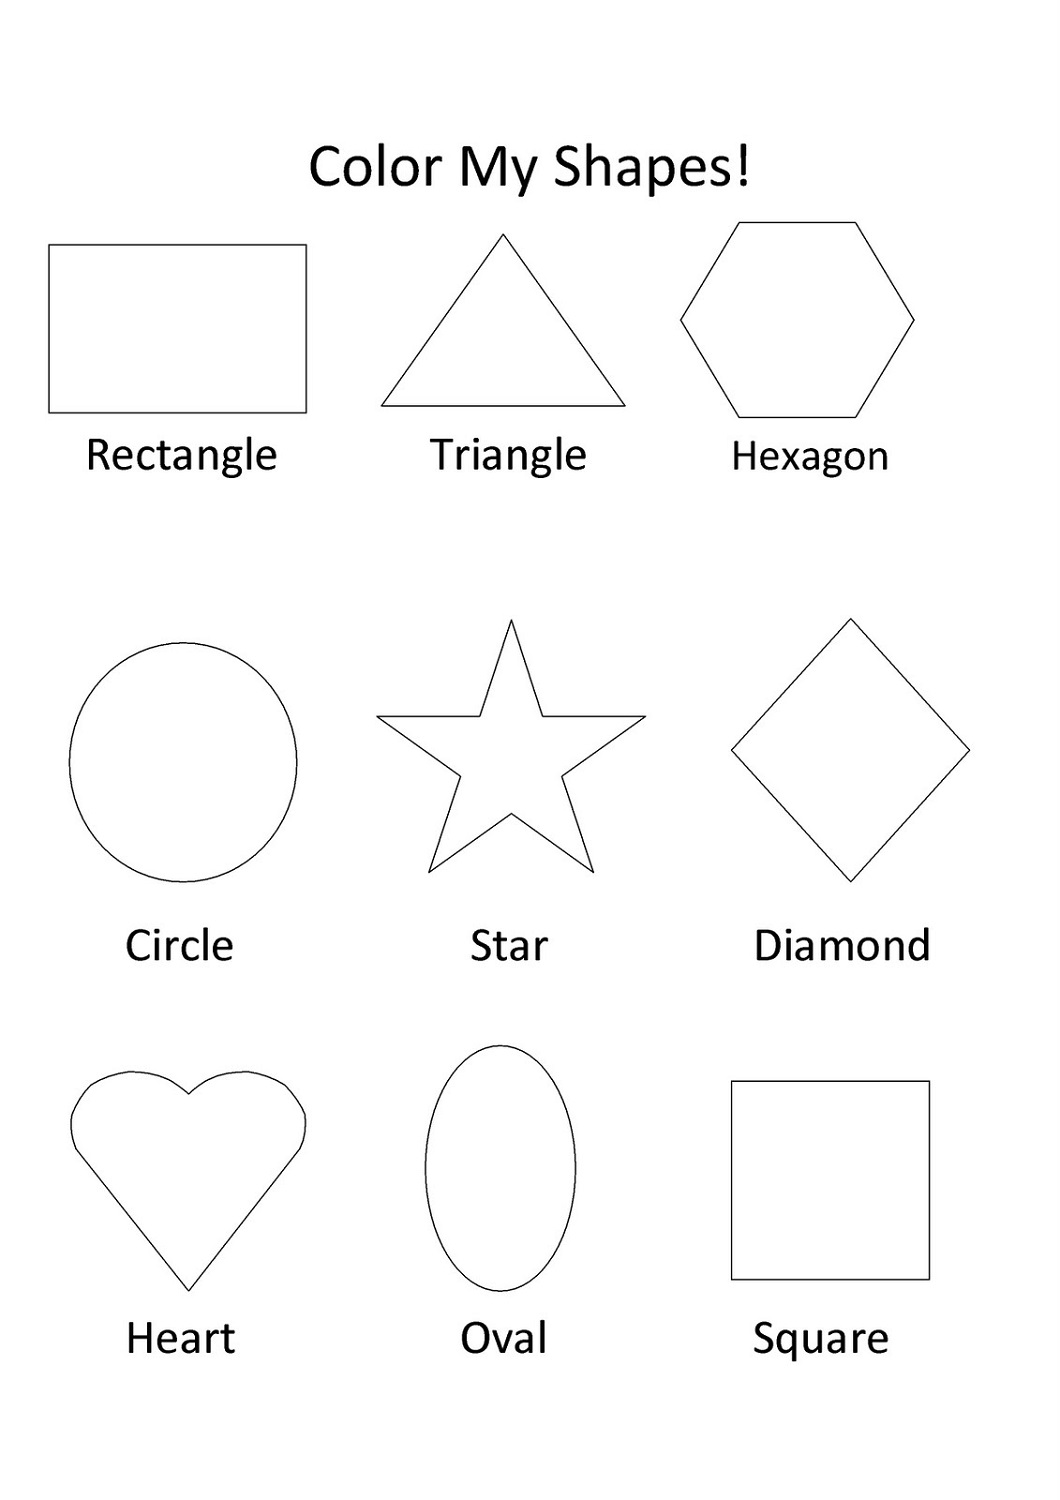 shapes-worksheets-for-kids-color